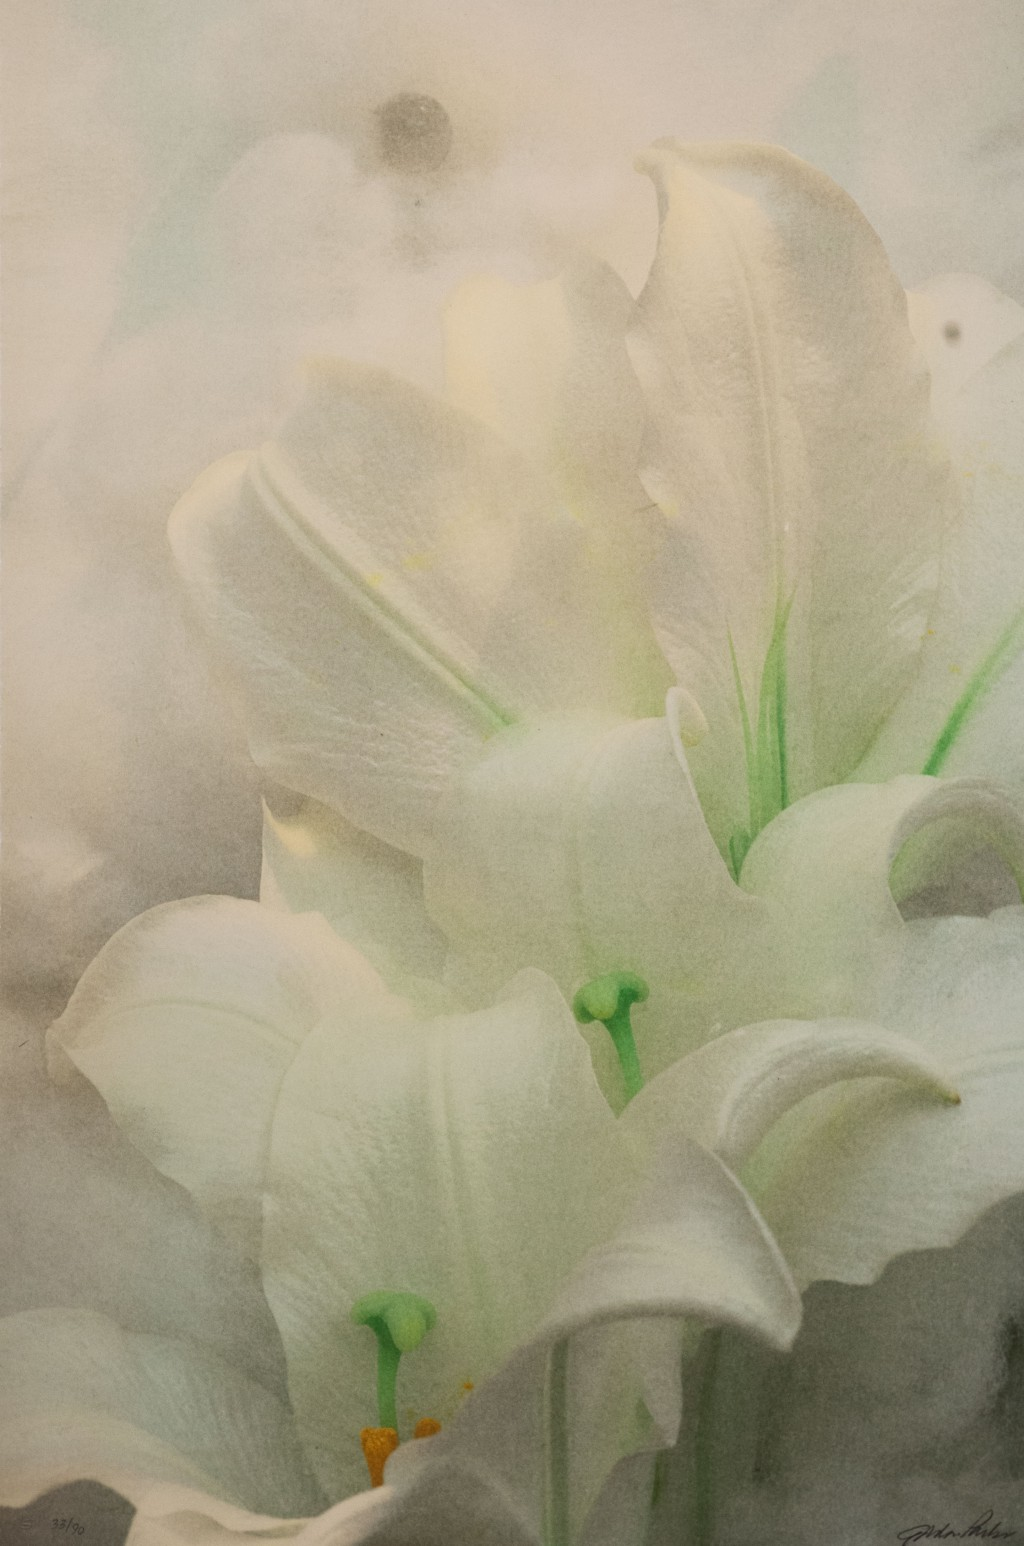 Angels image behind the flowers white lily